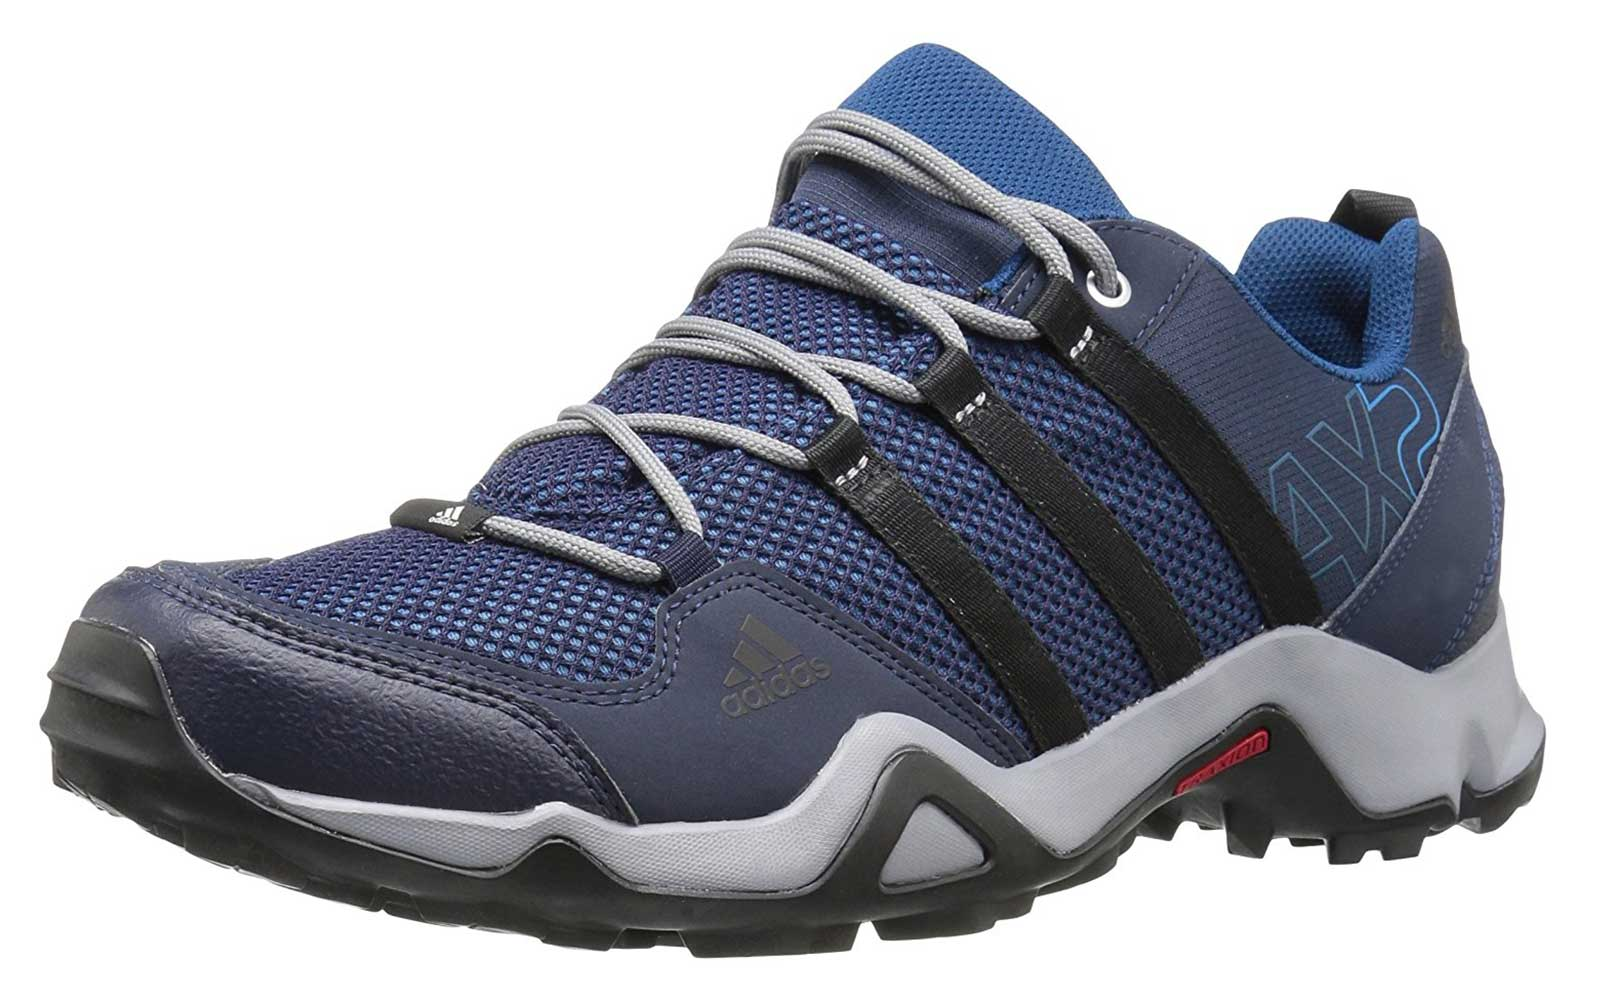 b0566785e4915 The 10 Best Hiking Shoes on Amazon | Travel + Leisure